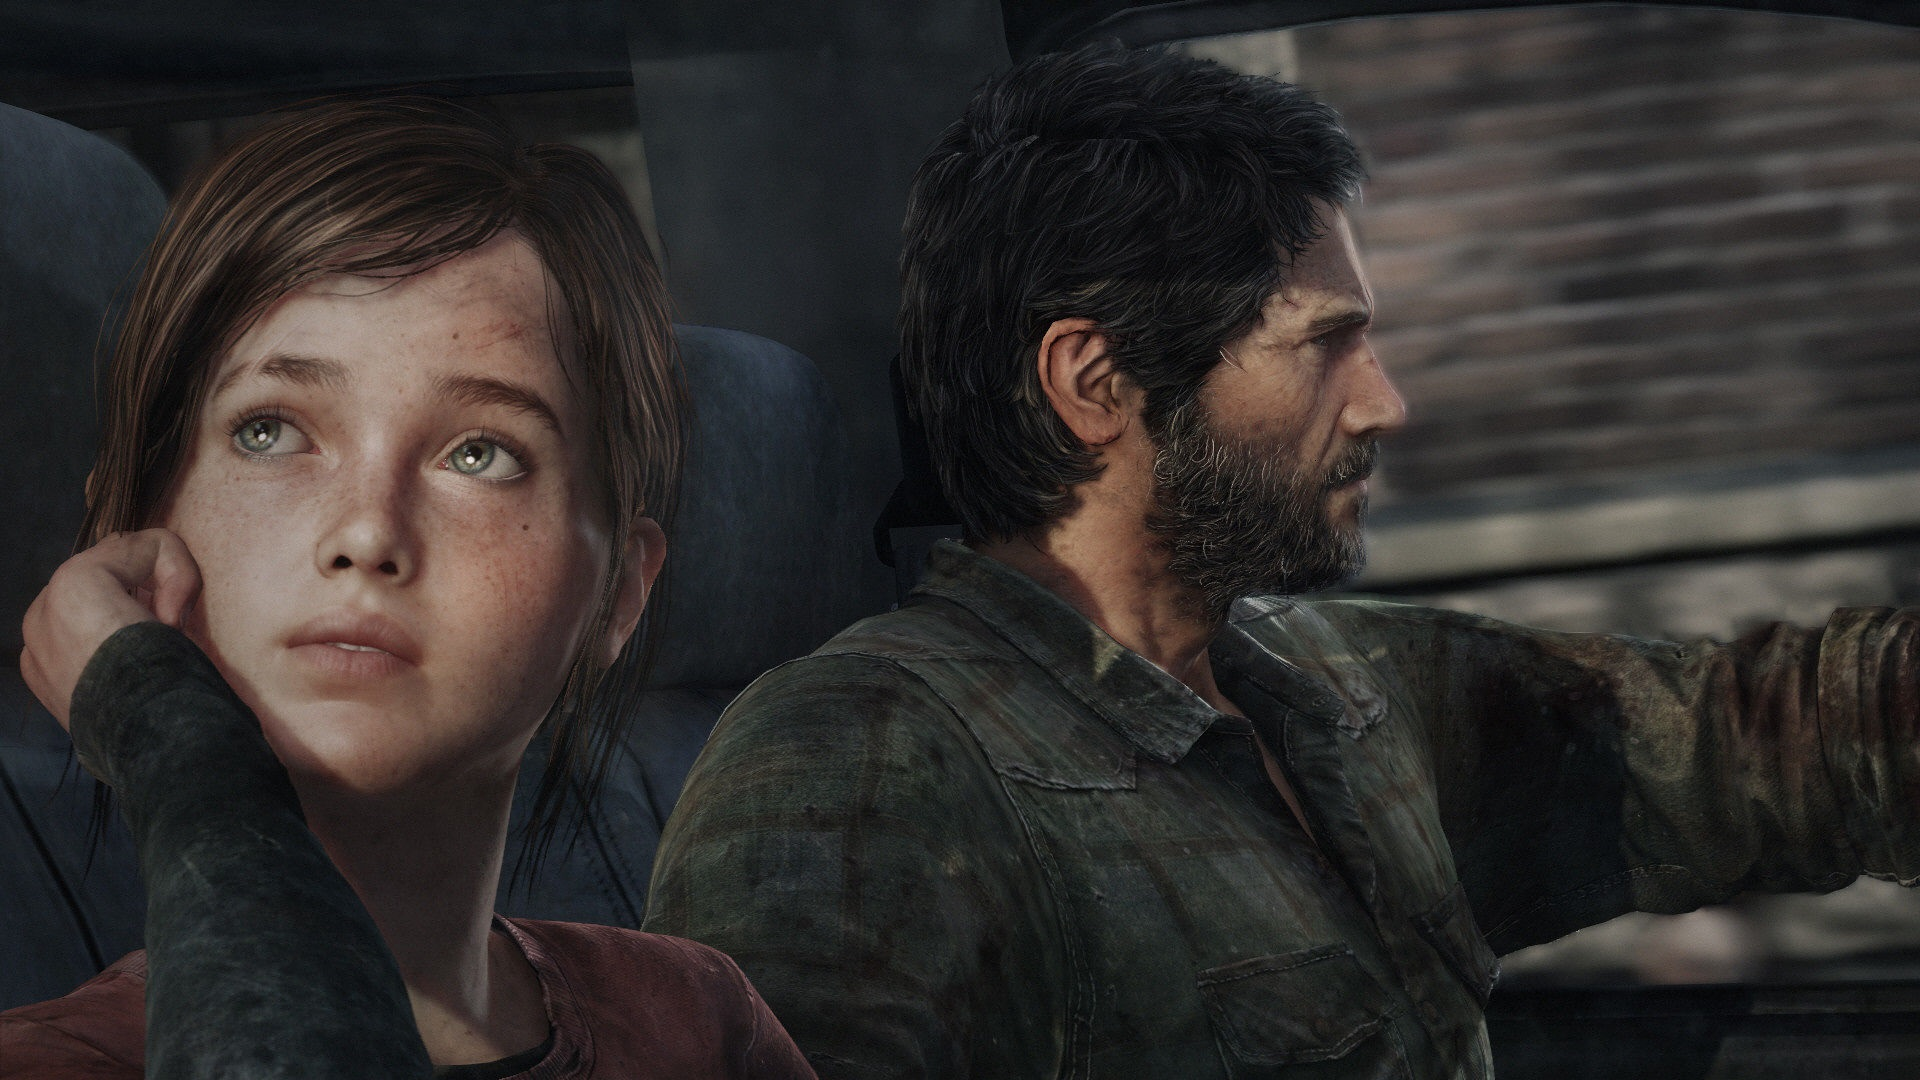 Ellie from The Last of Us